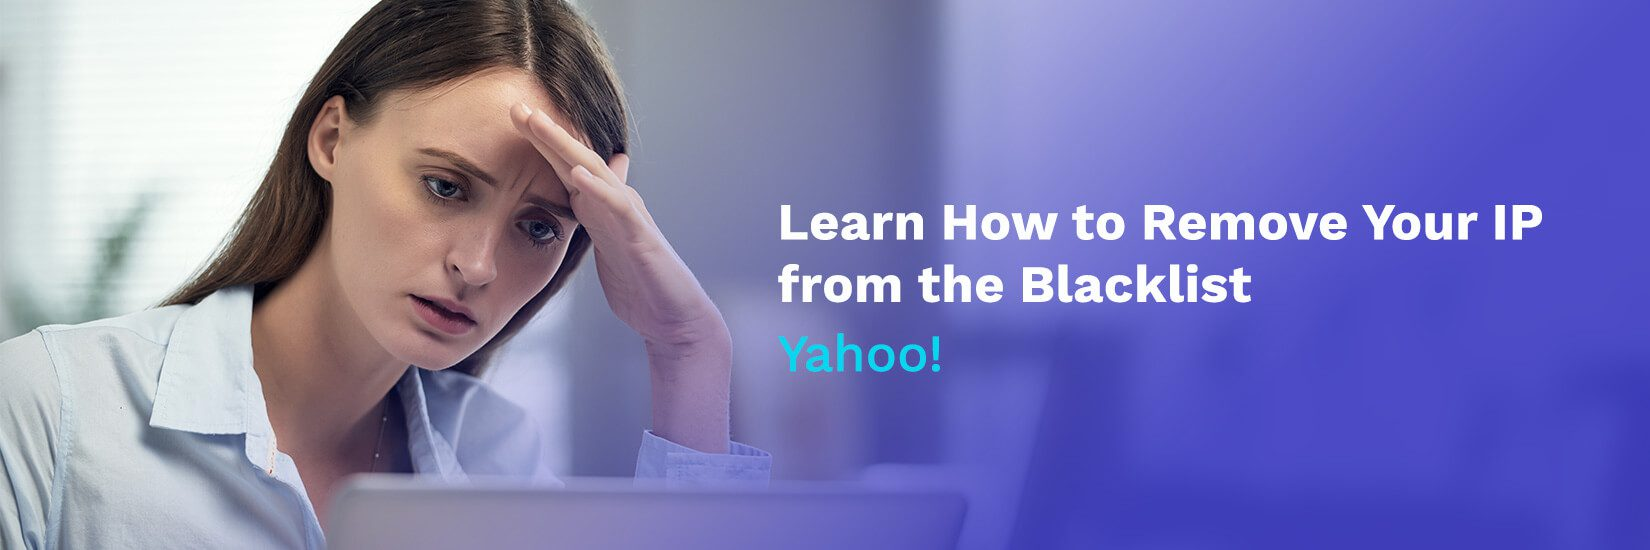 How to Remove Your IP Address from the Yahoo!'s Blacklist